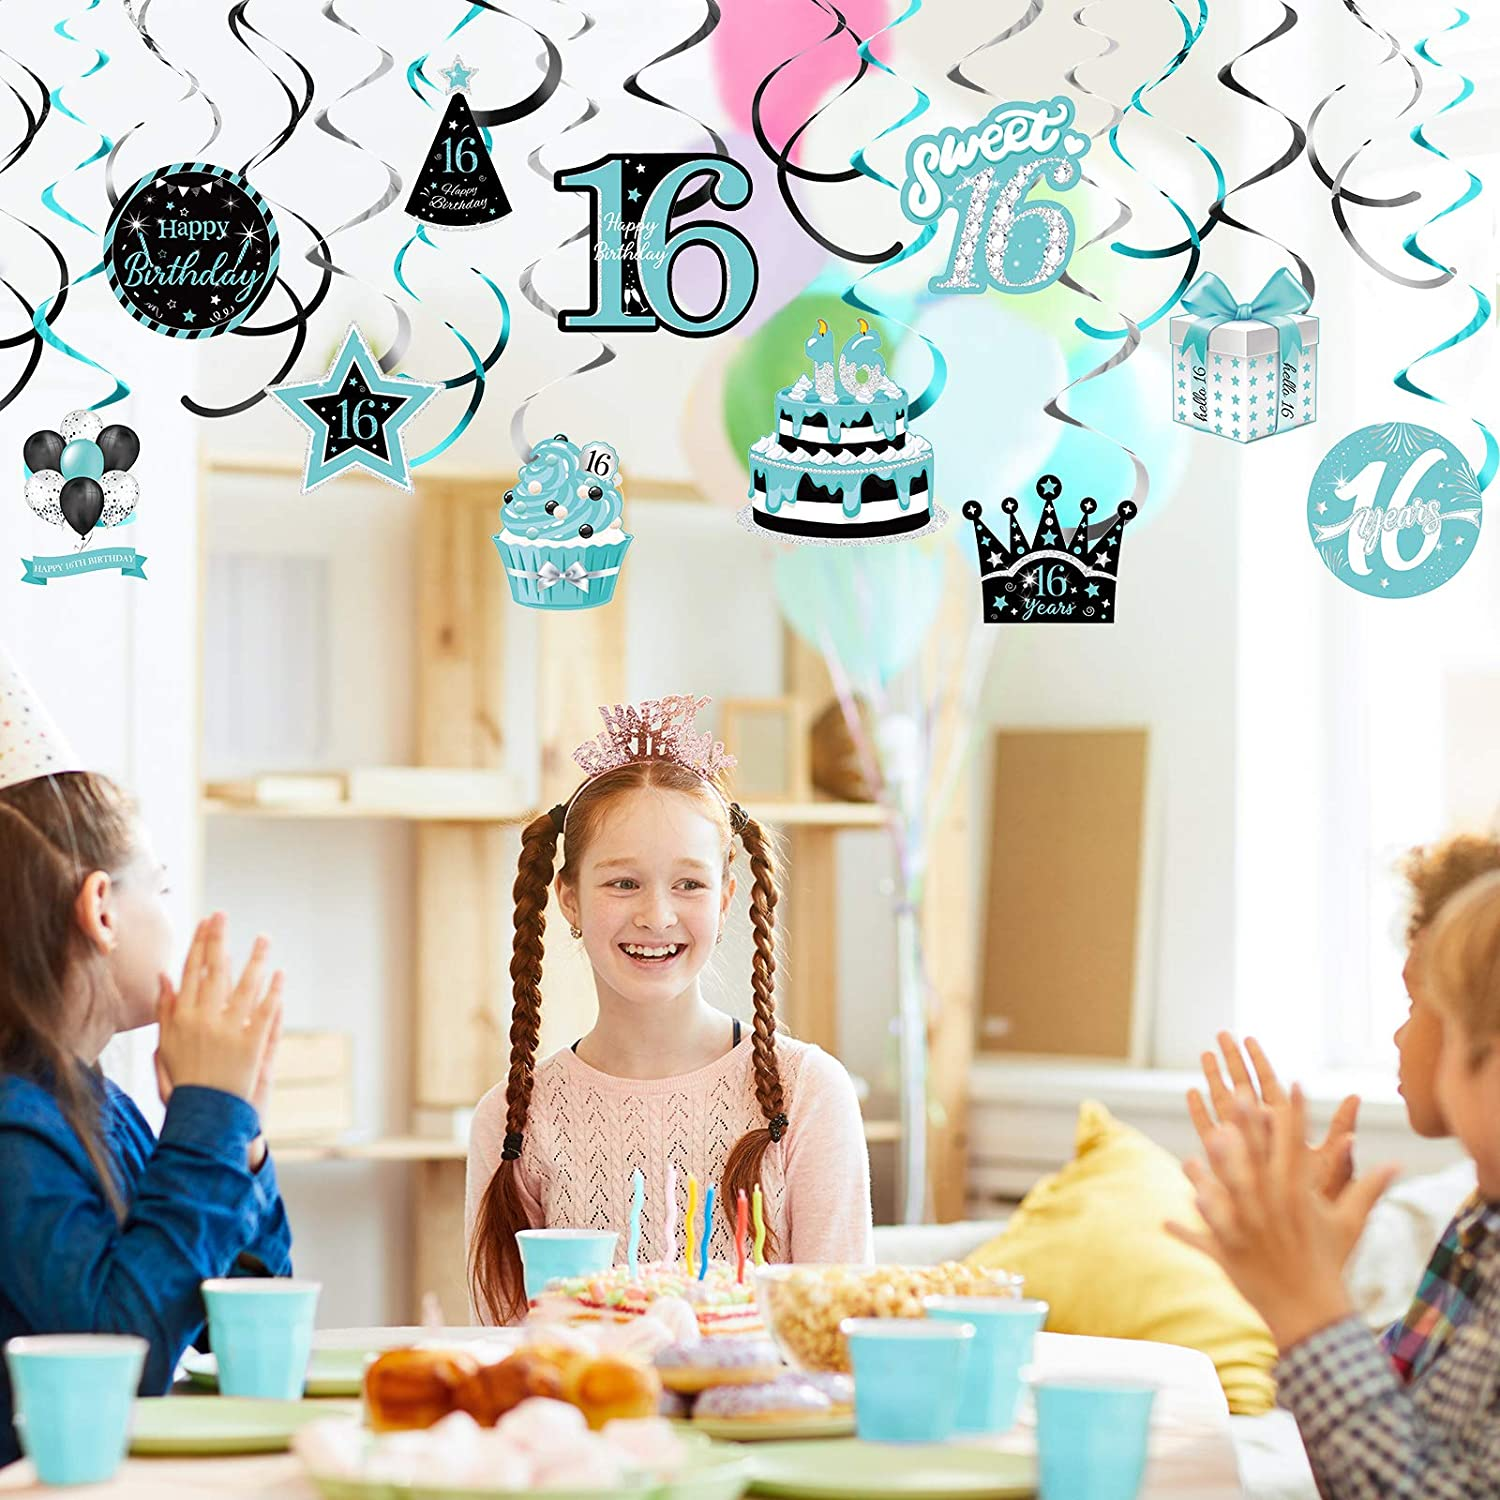 Teal Silver Black Blue Turquoise Happy 16th Birthday Foil Swirls Ceiling Decor for Girls Sweet Sixteen Birthday Decorations Supplies 30 Pieces 16th Birthday Hanging Swirl Decorations